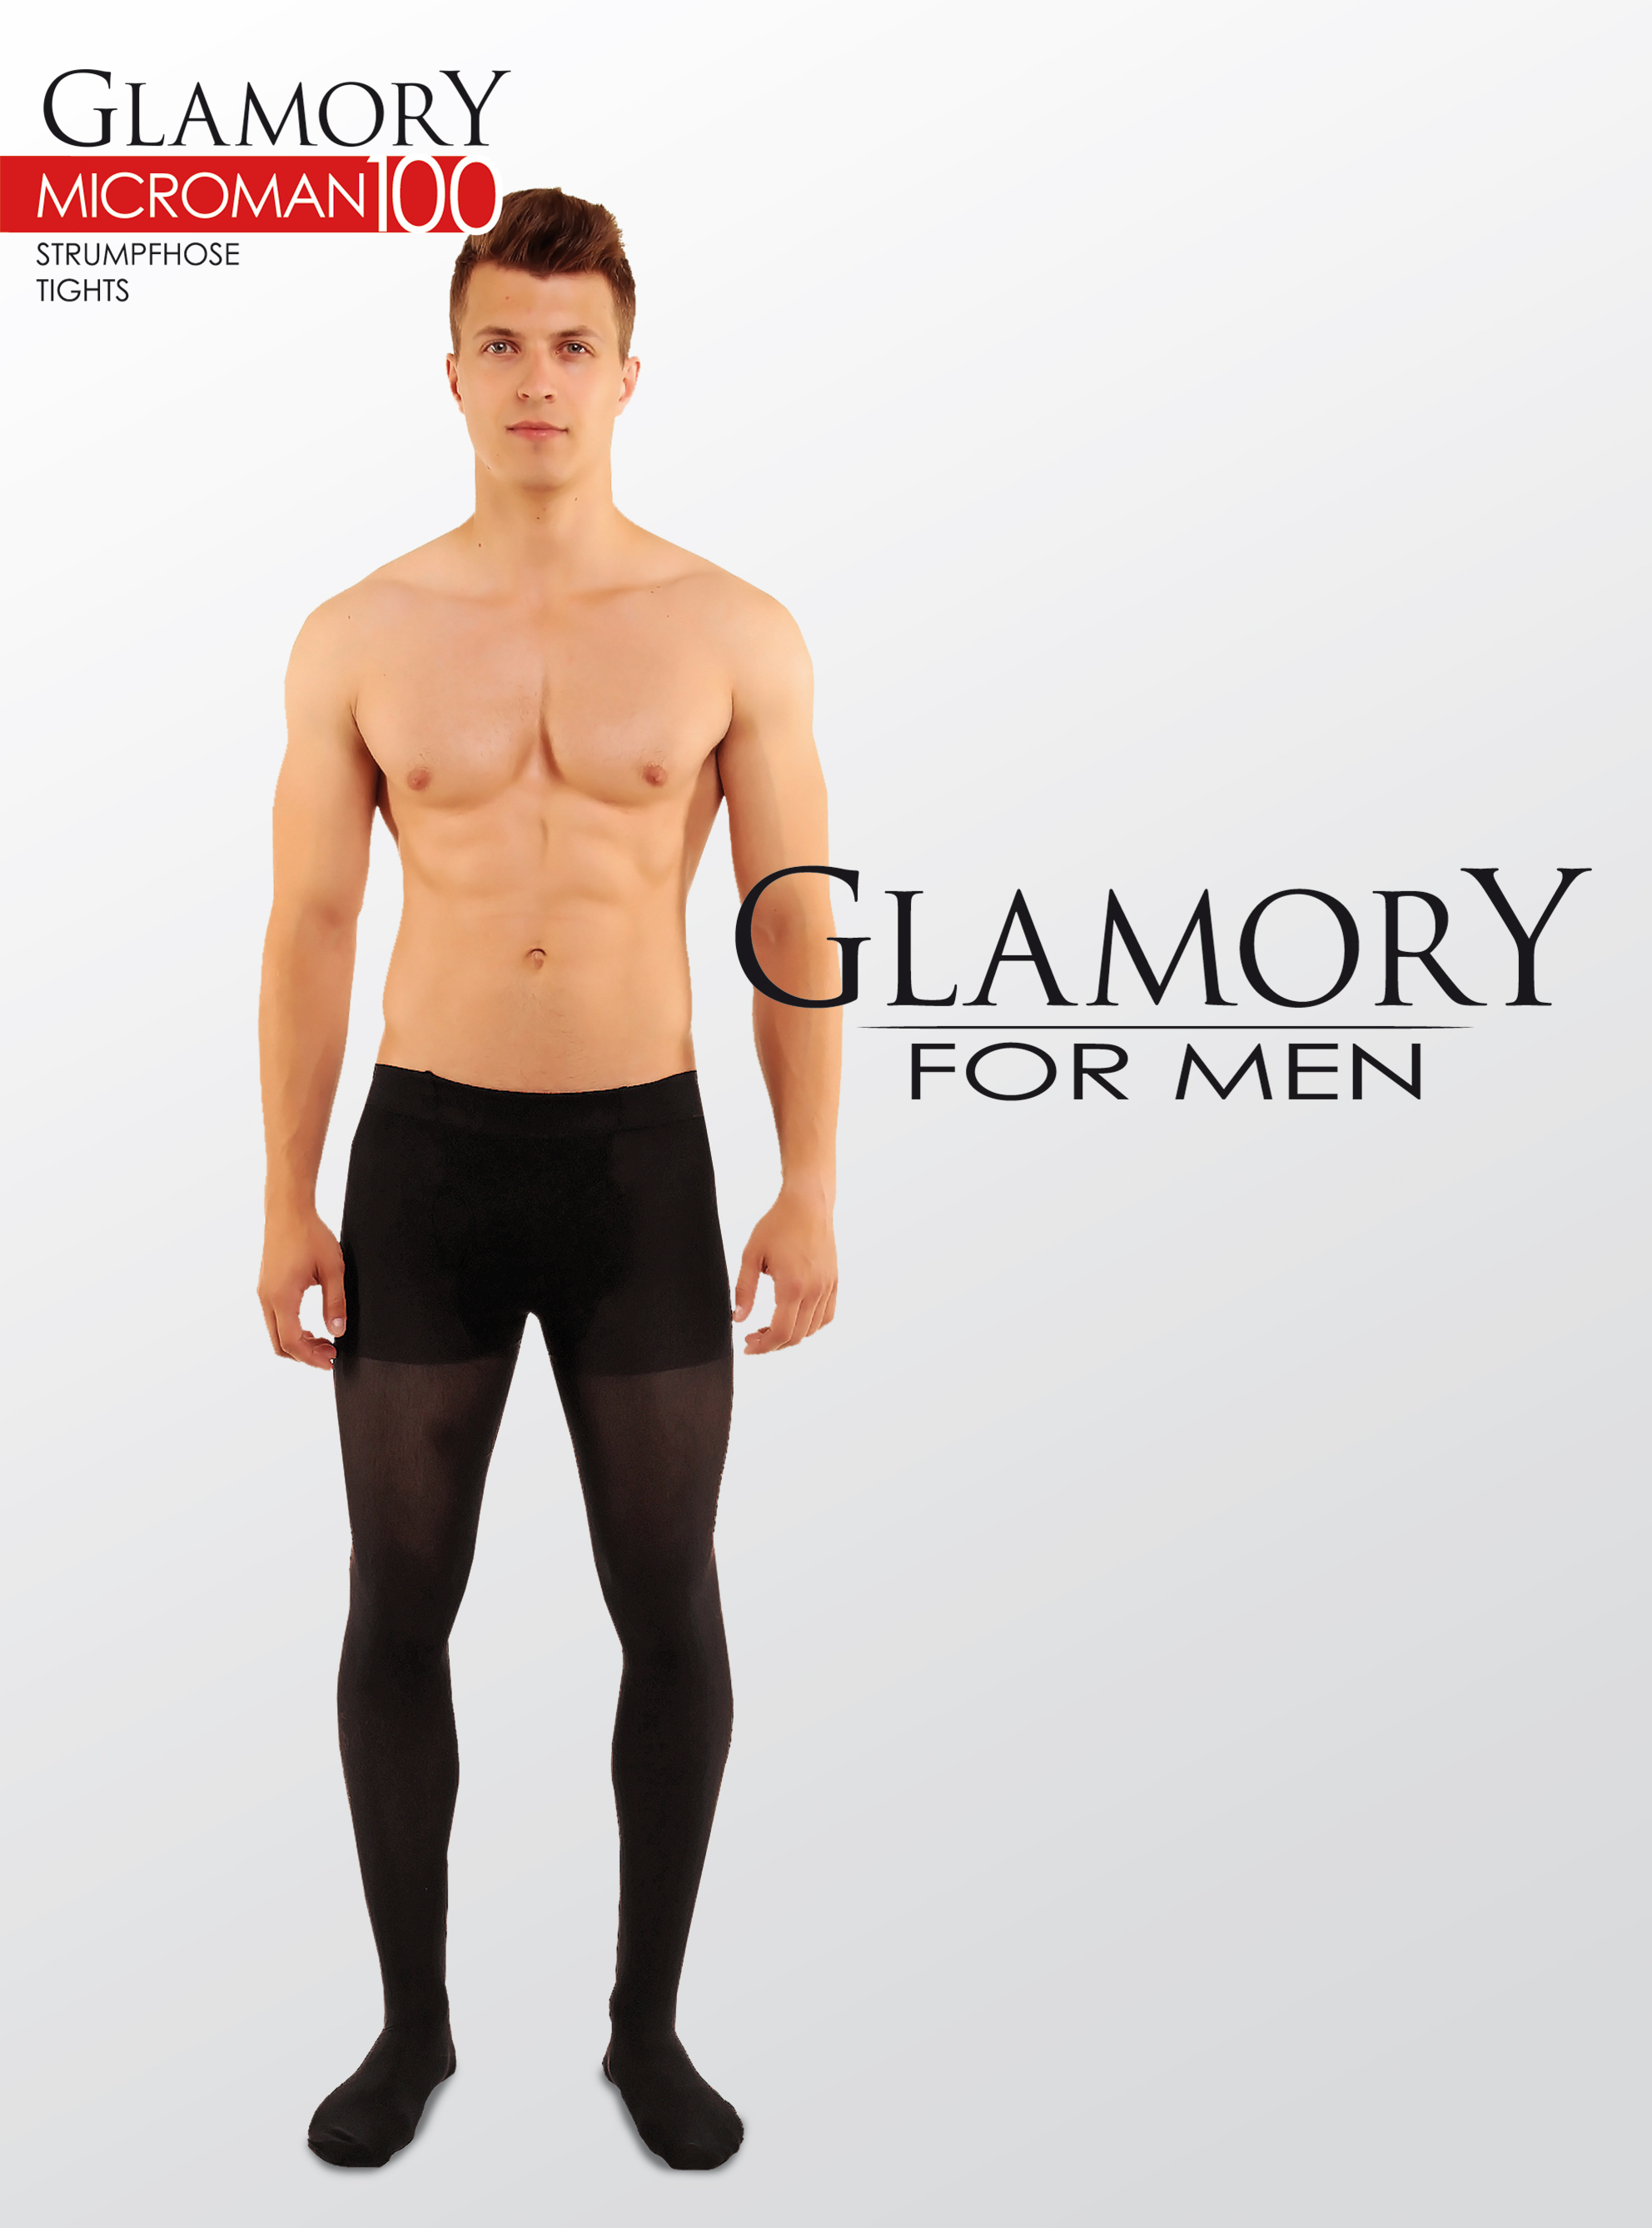 Glamory for Men Microman 100 Opaque Tights